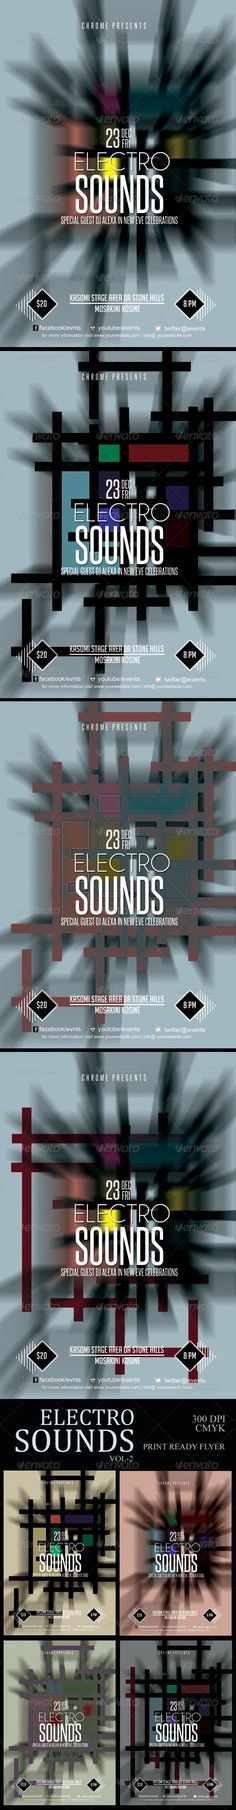 Electro Sounds Futuristic Flyer 2